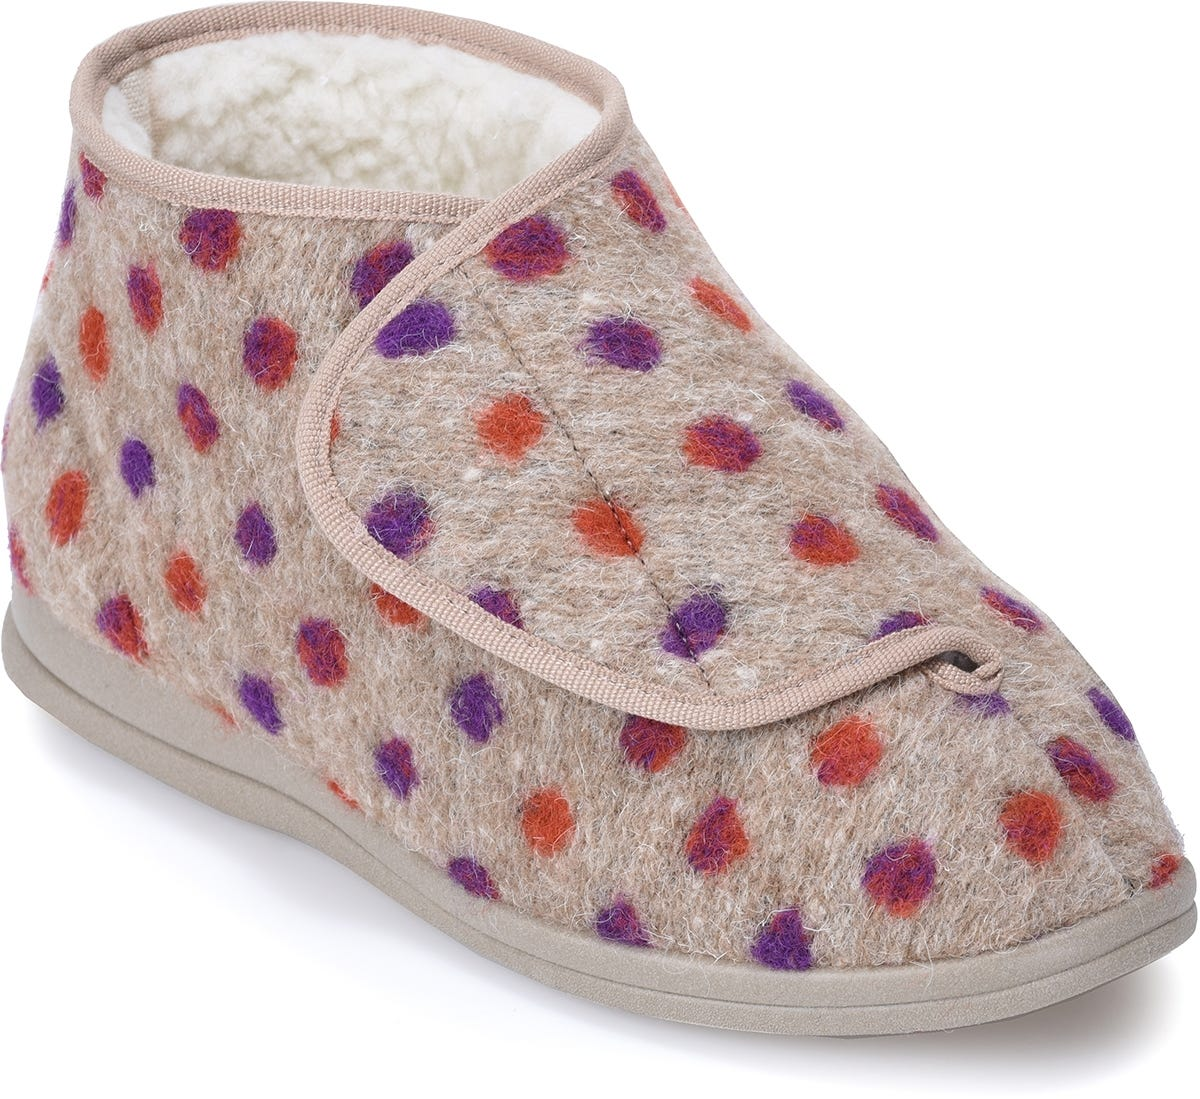 Cosyfeet Elise Warm-Lined Slipper